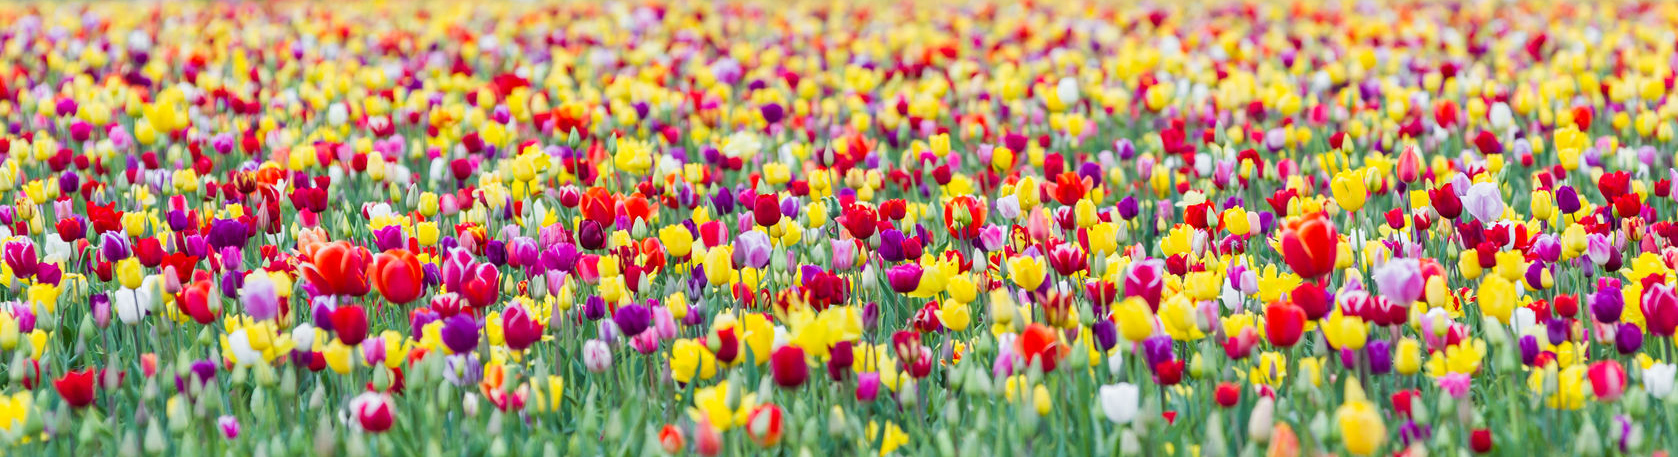 Field full of a variety of tulip colors.